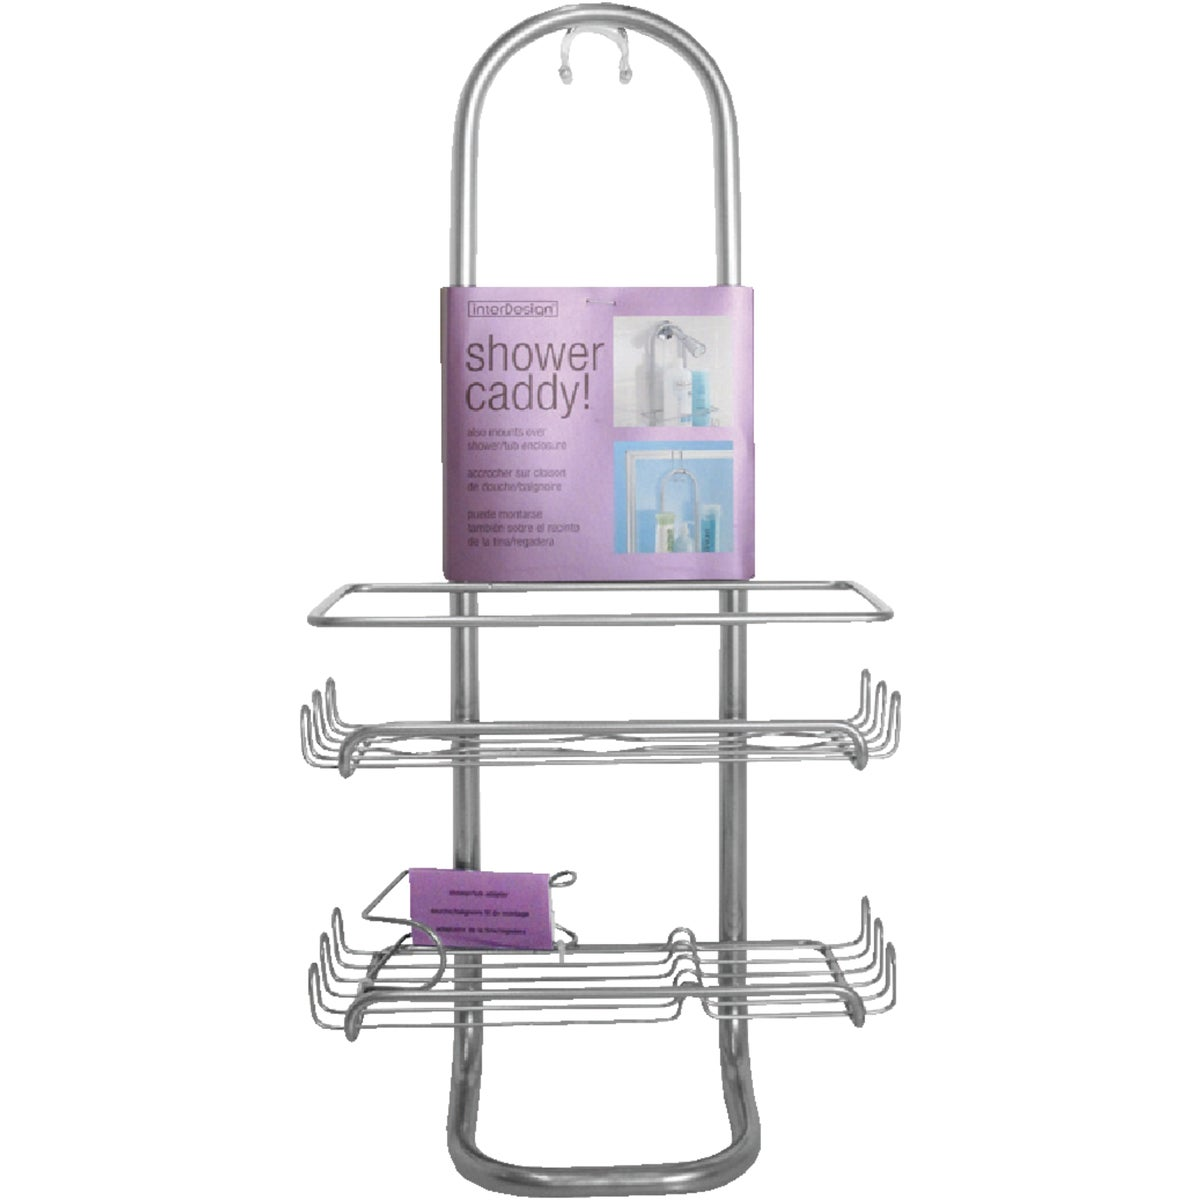 CLASSICO SHOWER CADDY - 60166 by Interdesign Inc